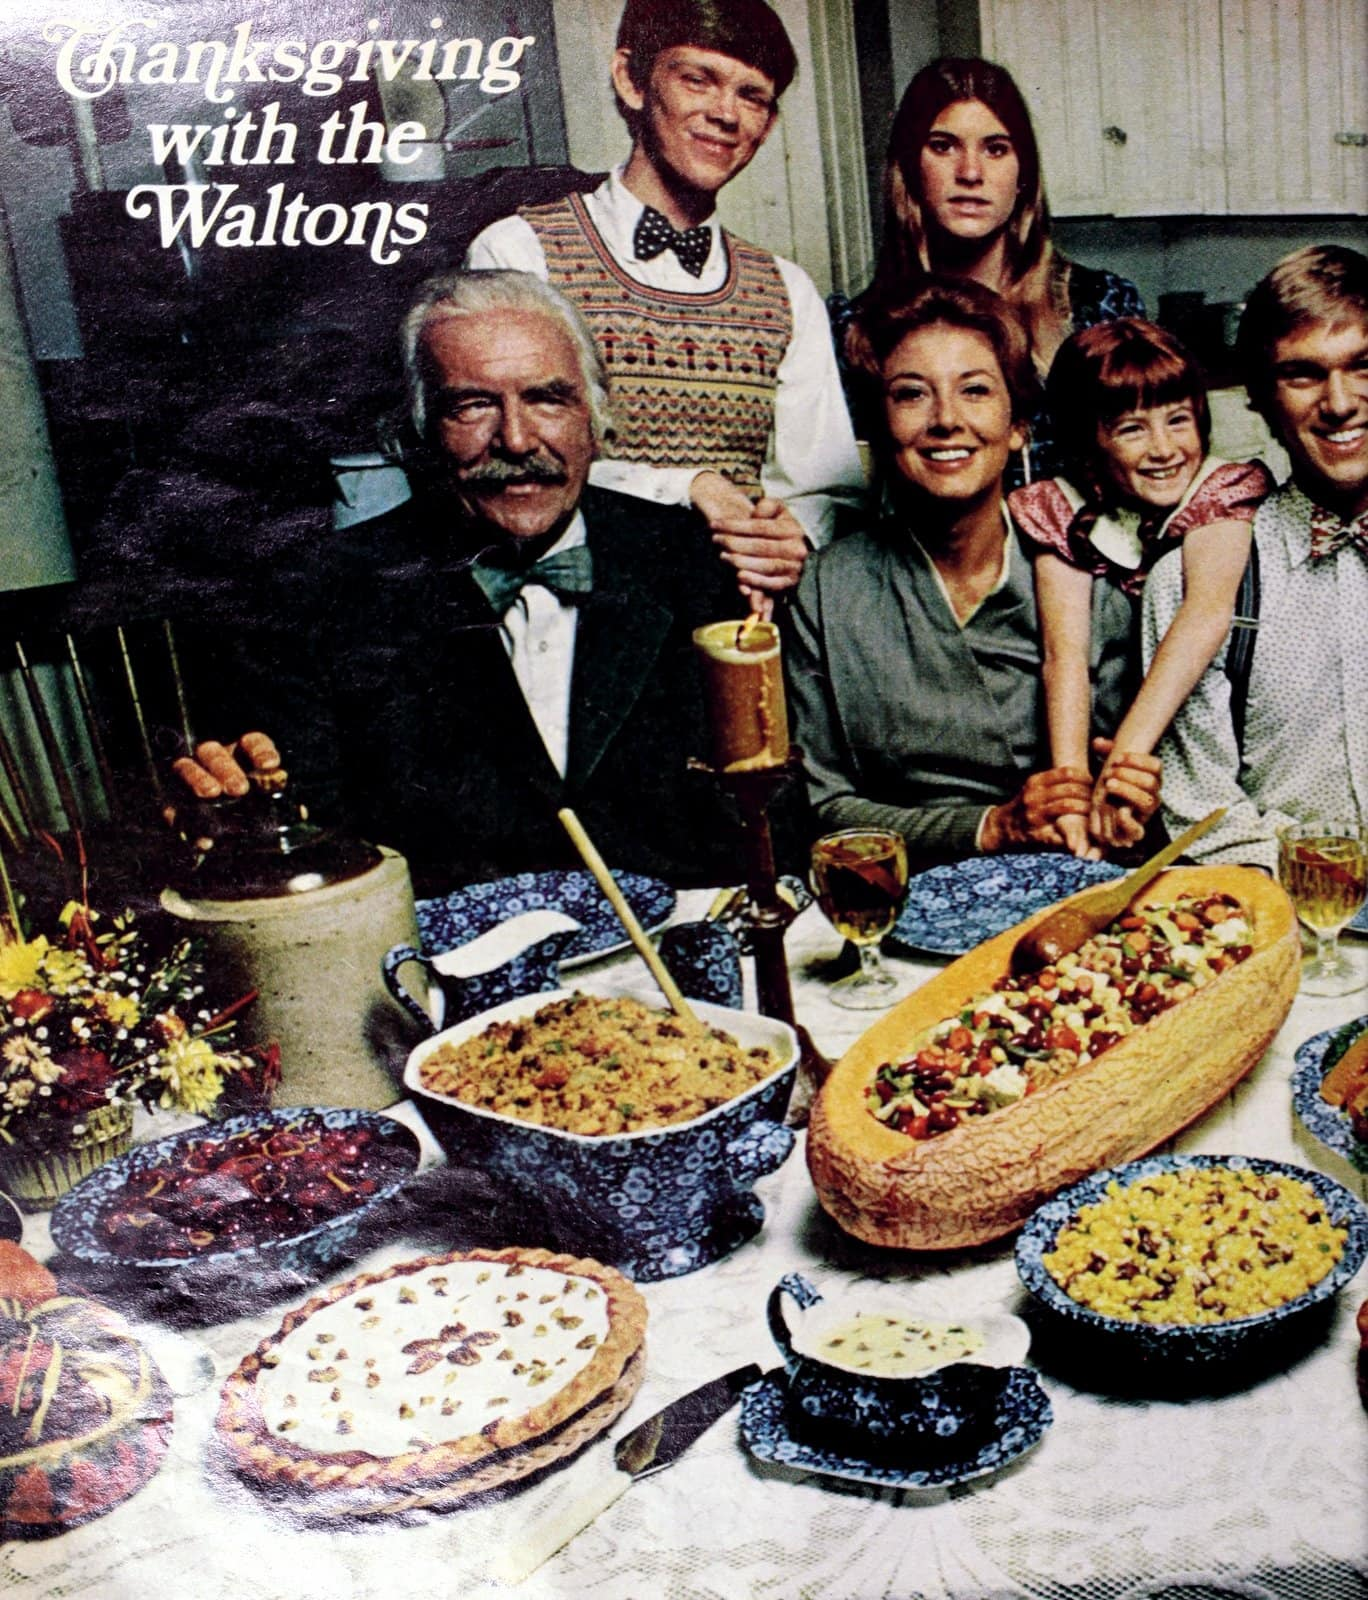 Thanksgiving with The Waltons - 1973 (2)